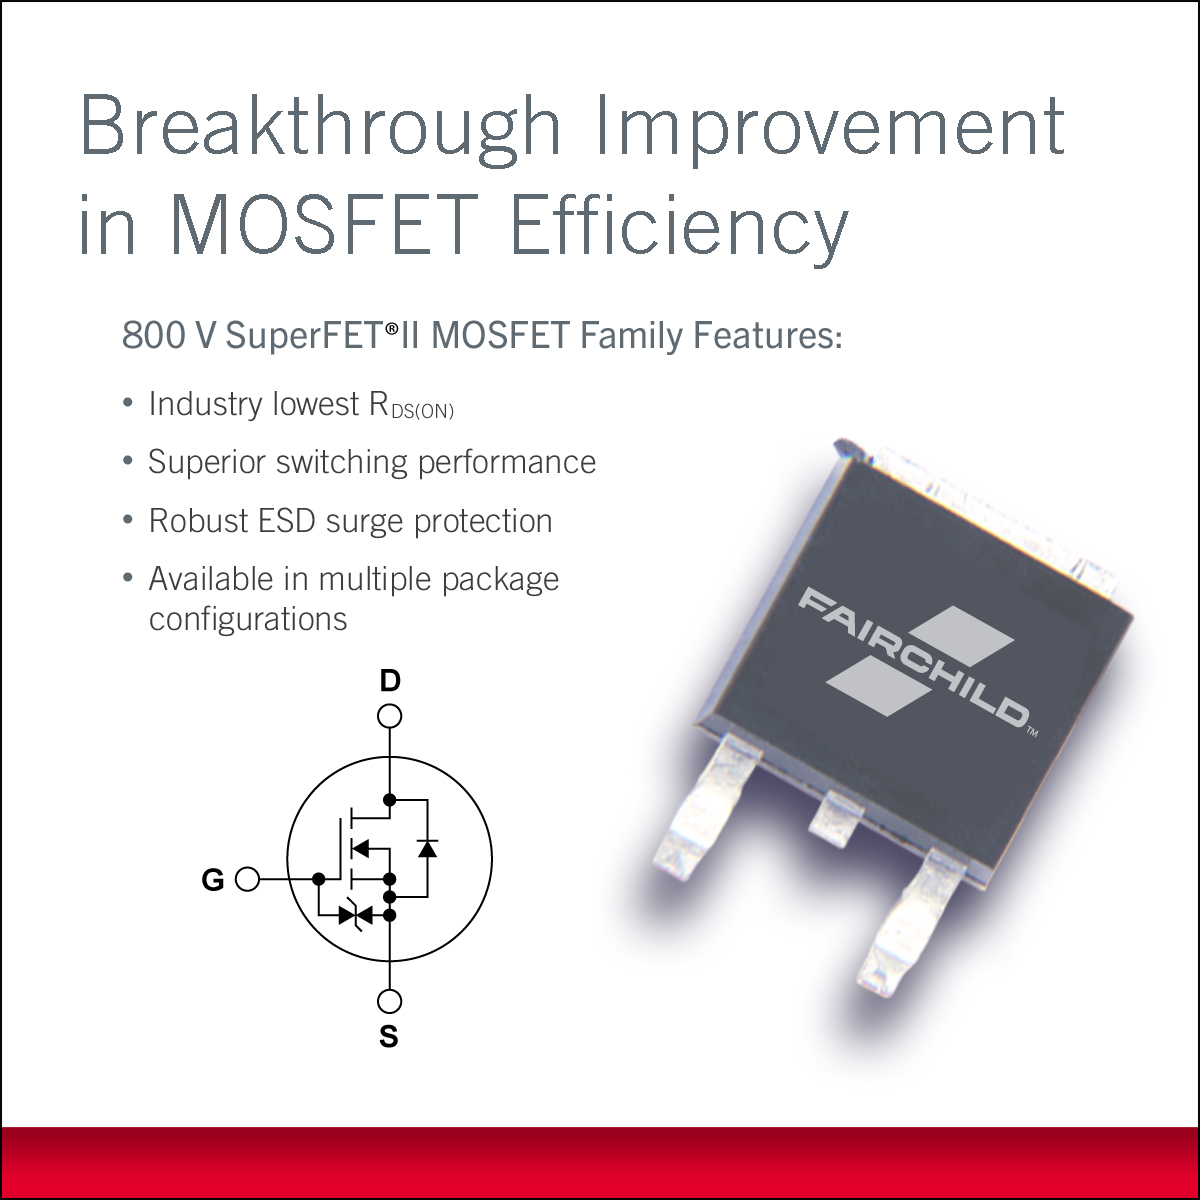 Fairchild's 800V SuperFET II MOSFET Family Delivers Lowest